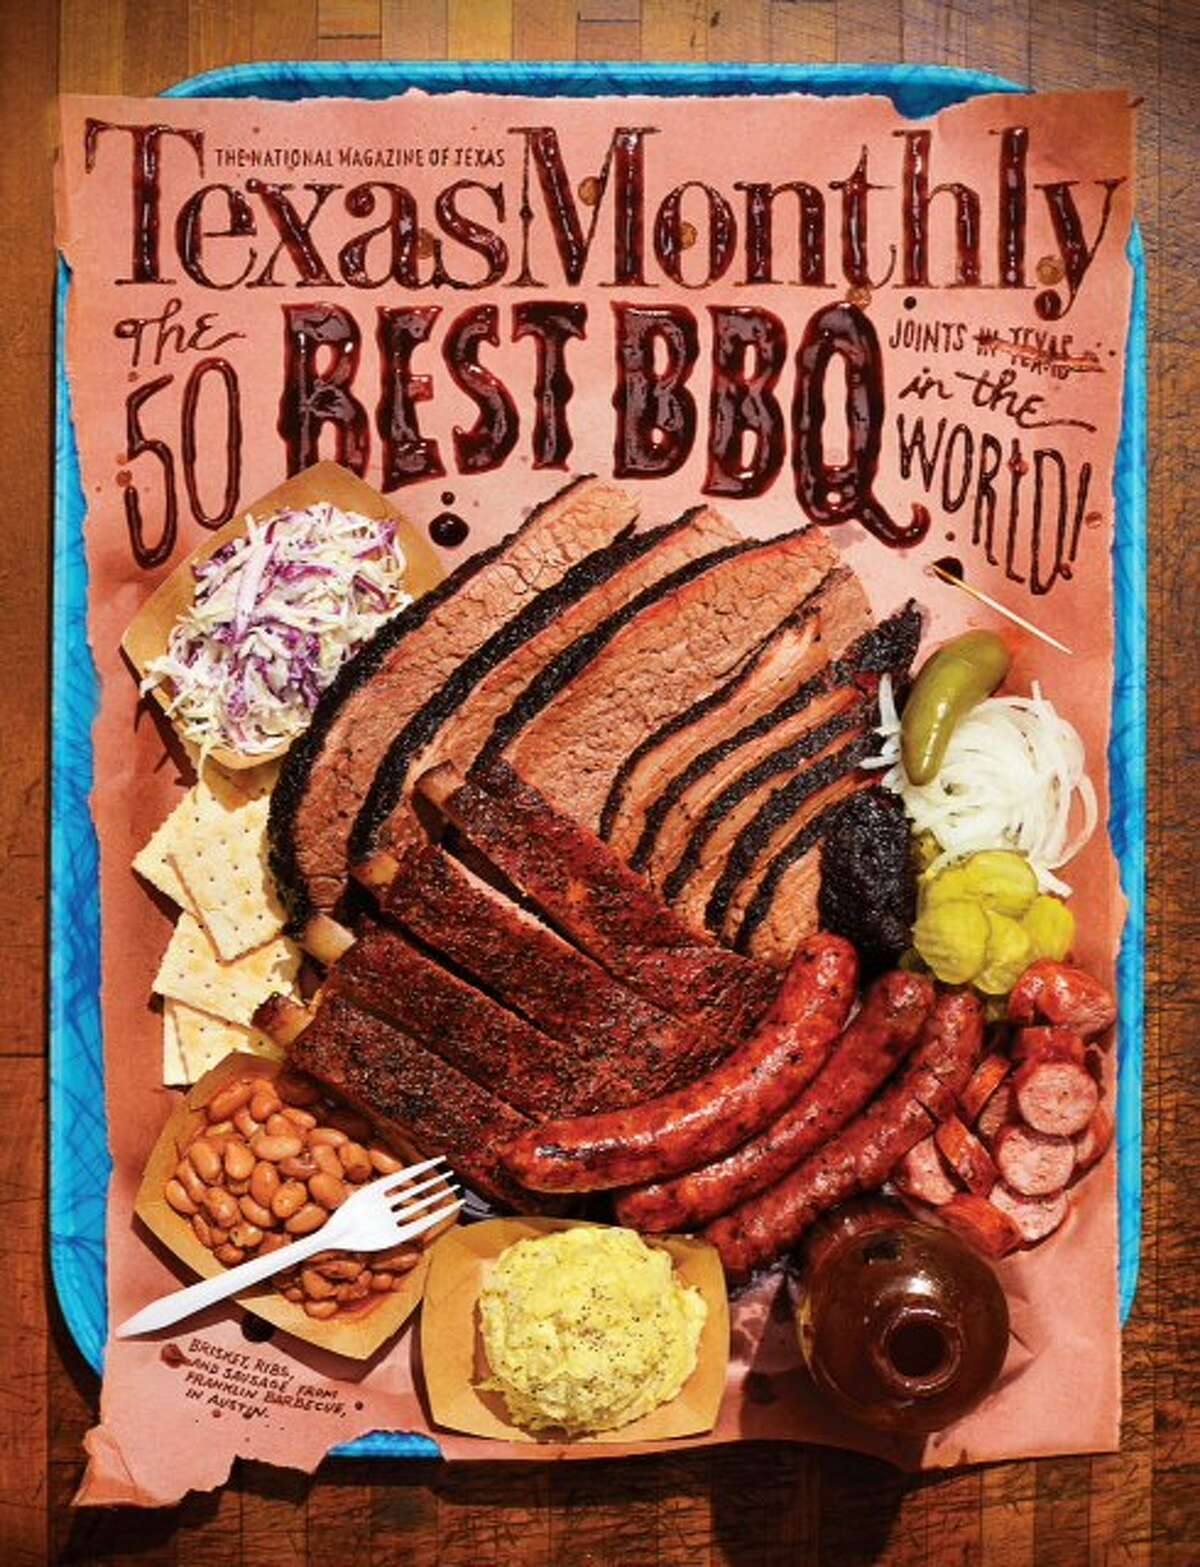 Pat Sharpe edits Texas Monthly's Barbecue Issue, on newsstands today.